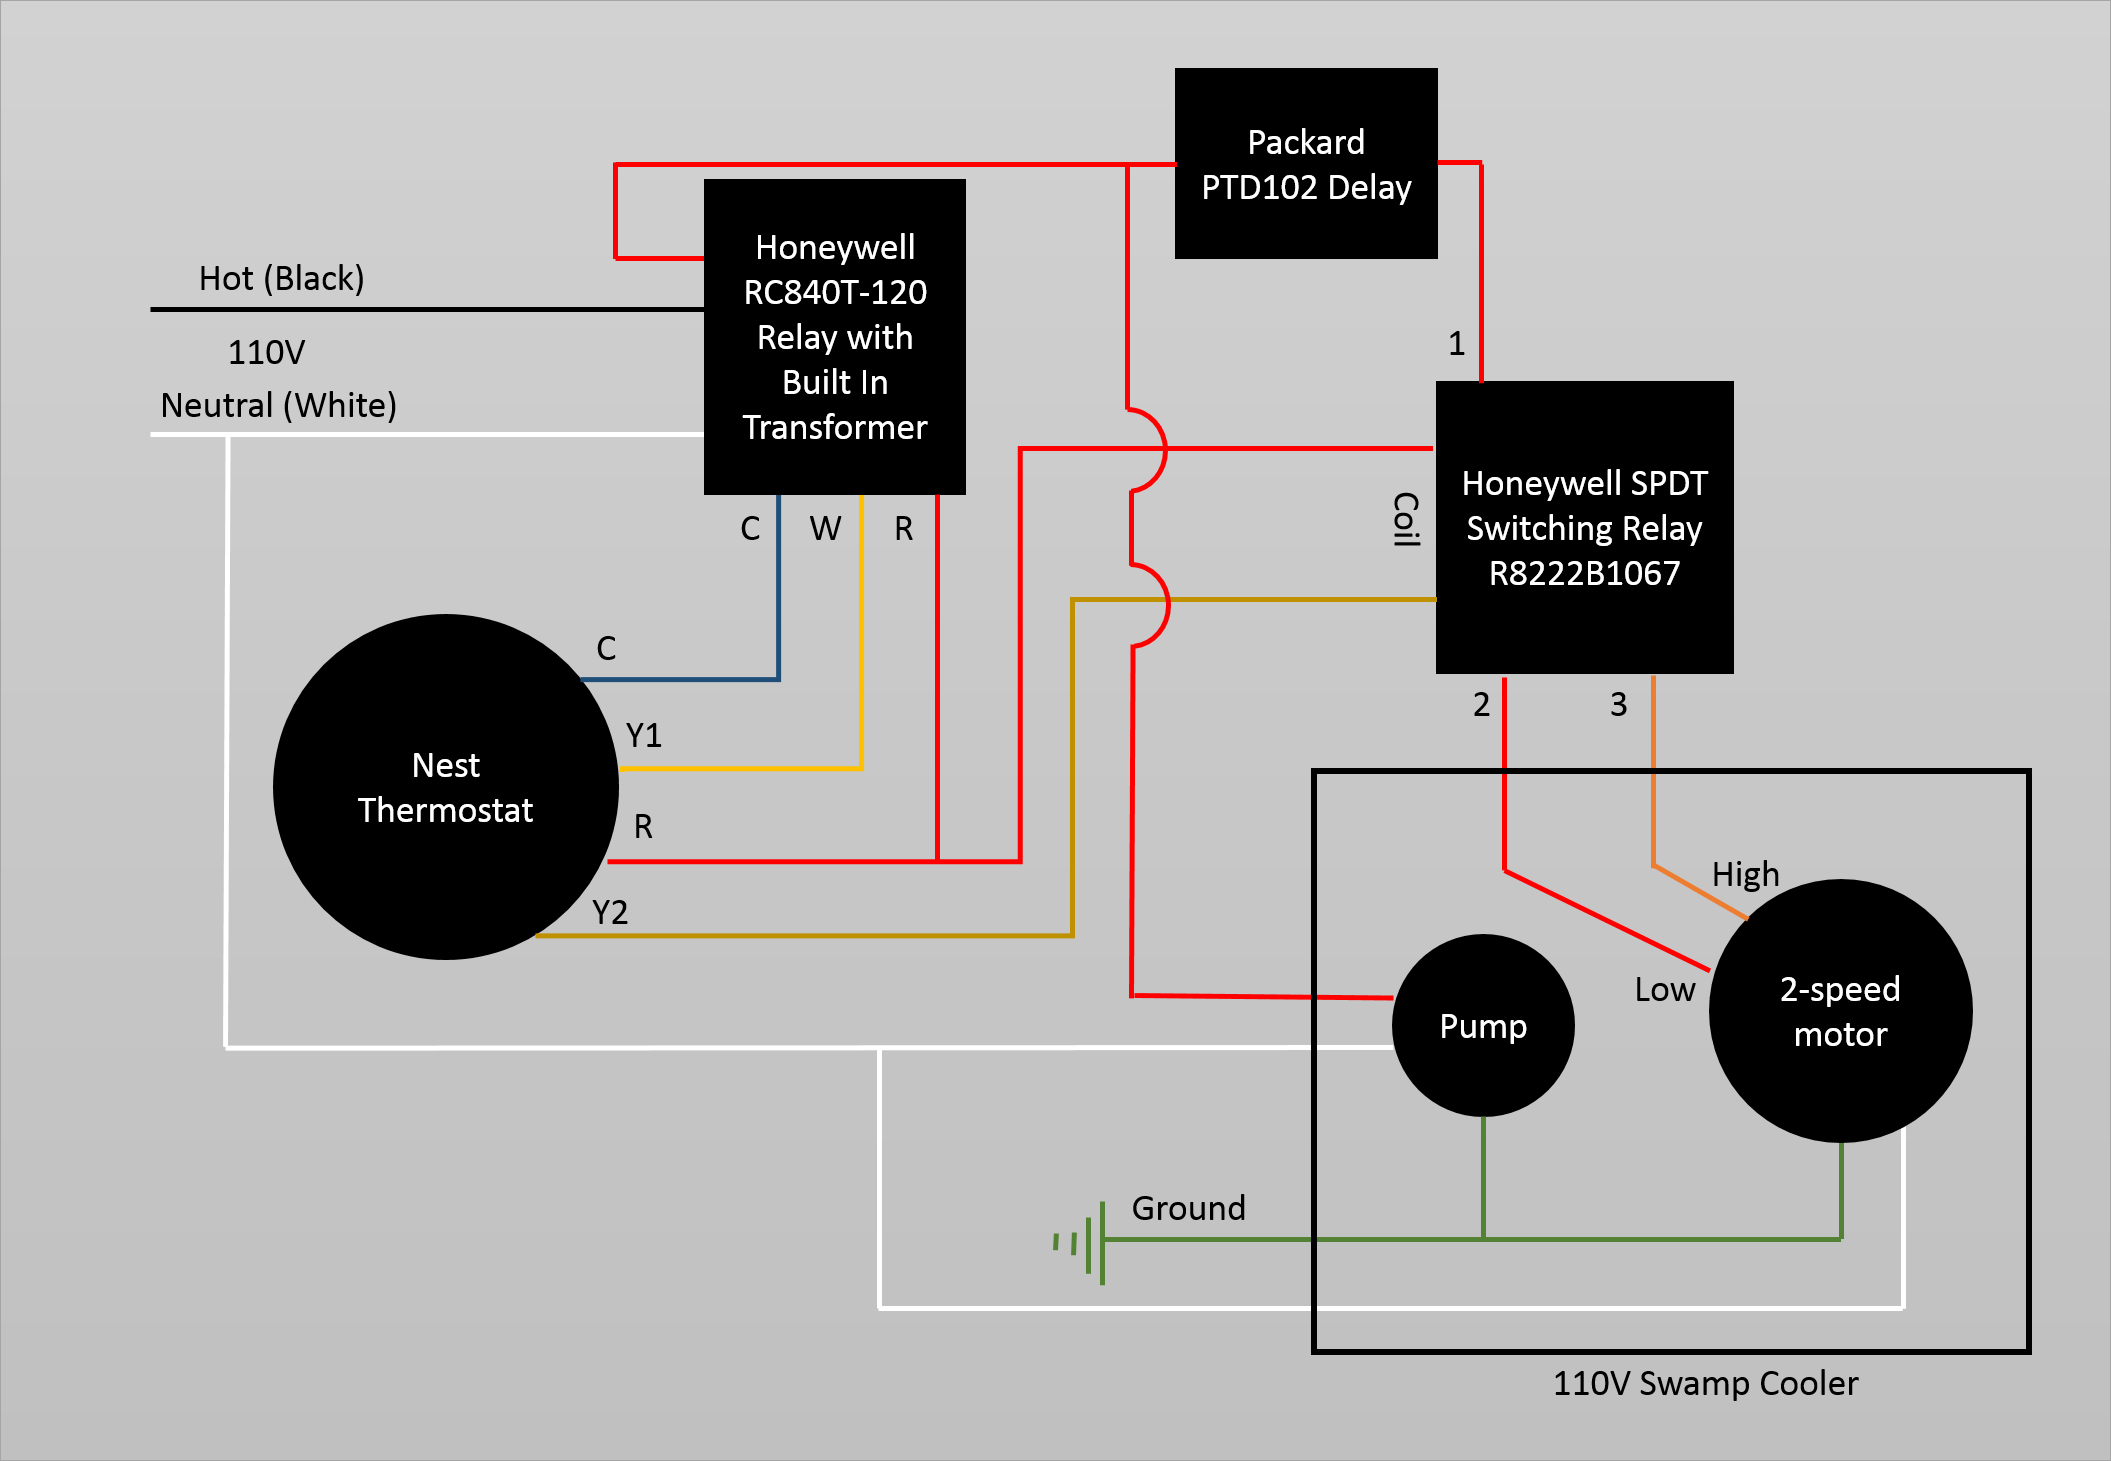 Wiring - Controlling 110V Swamp Cooler Using Nest Thermostat - Home - 5 Wire Thermostat Wiring Diagram Nest